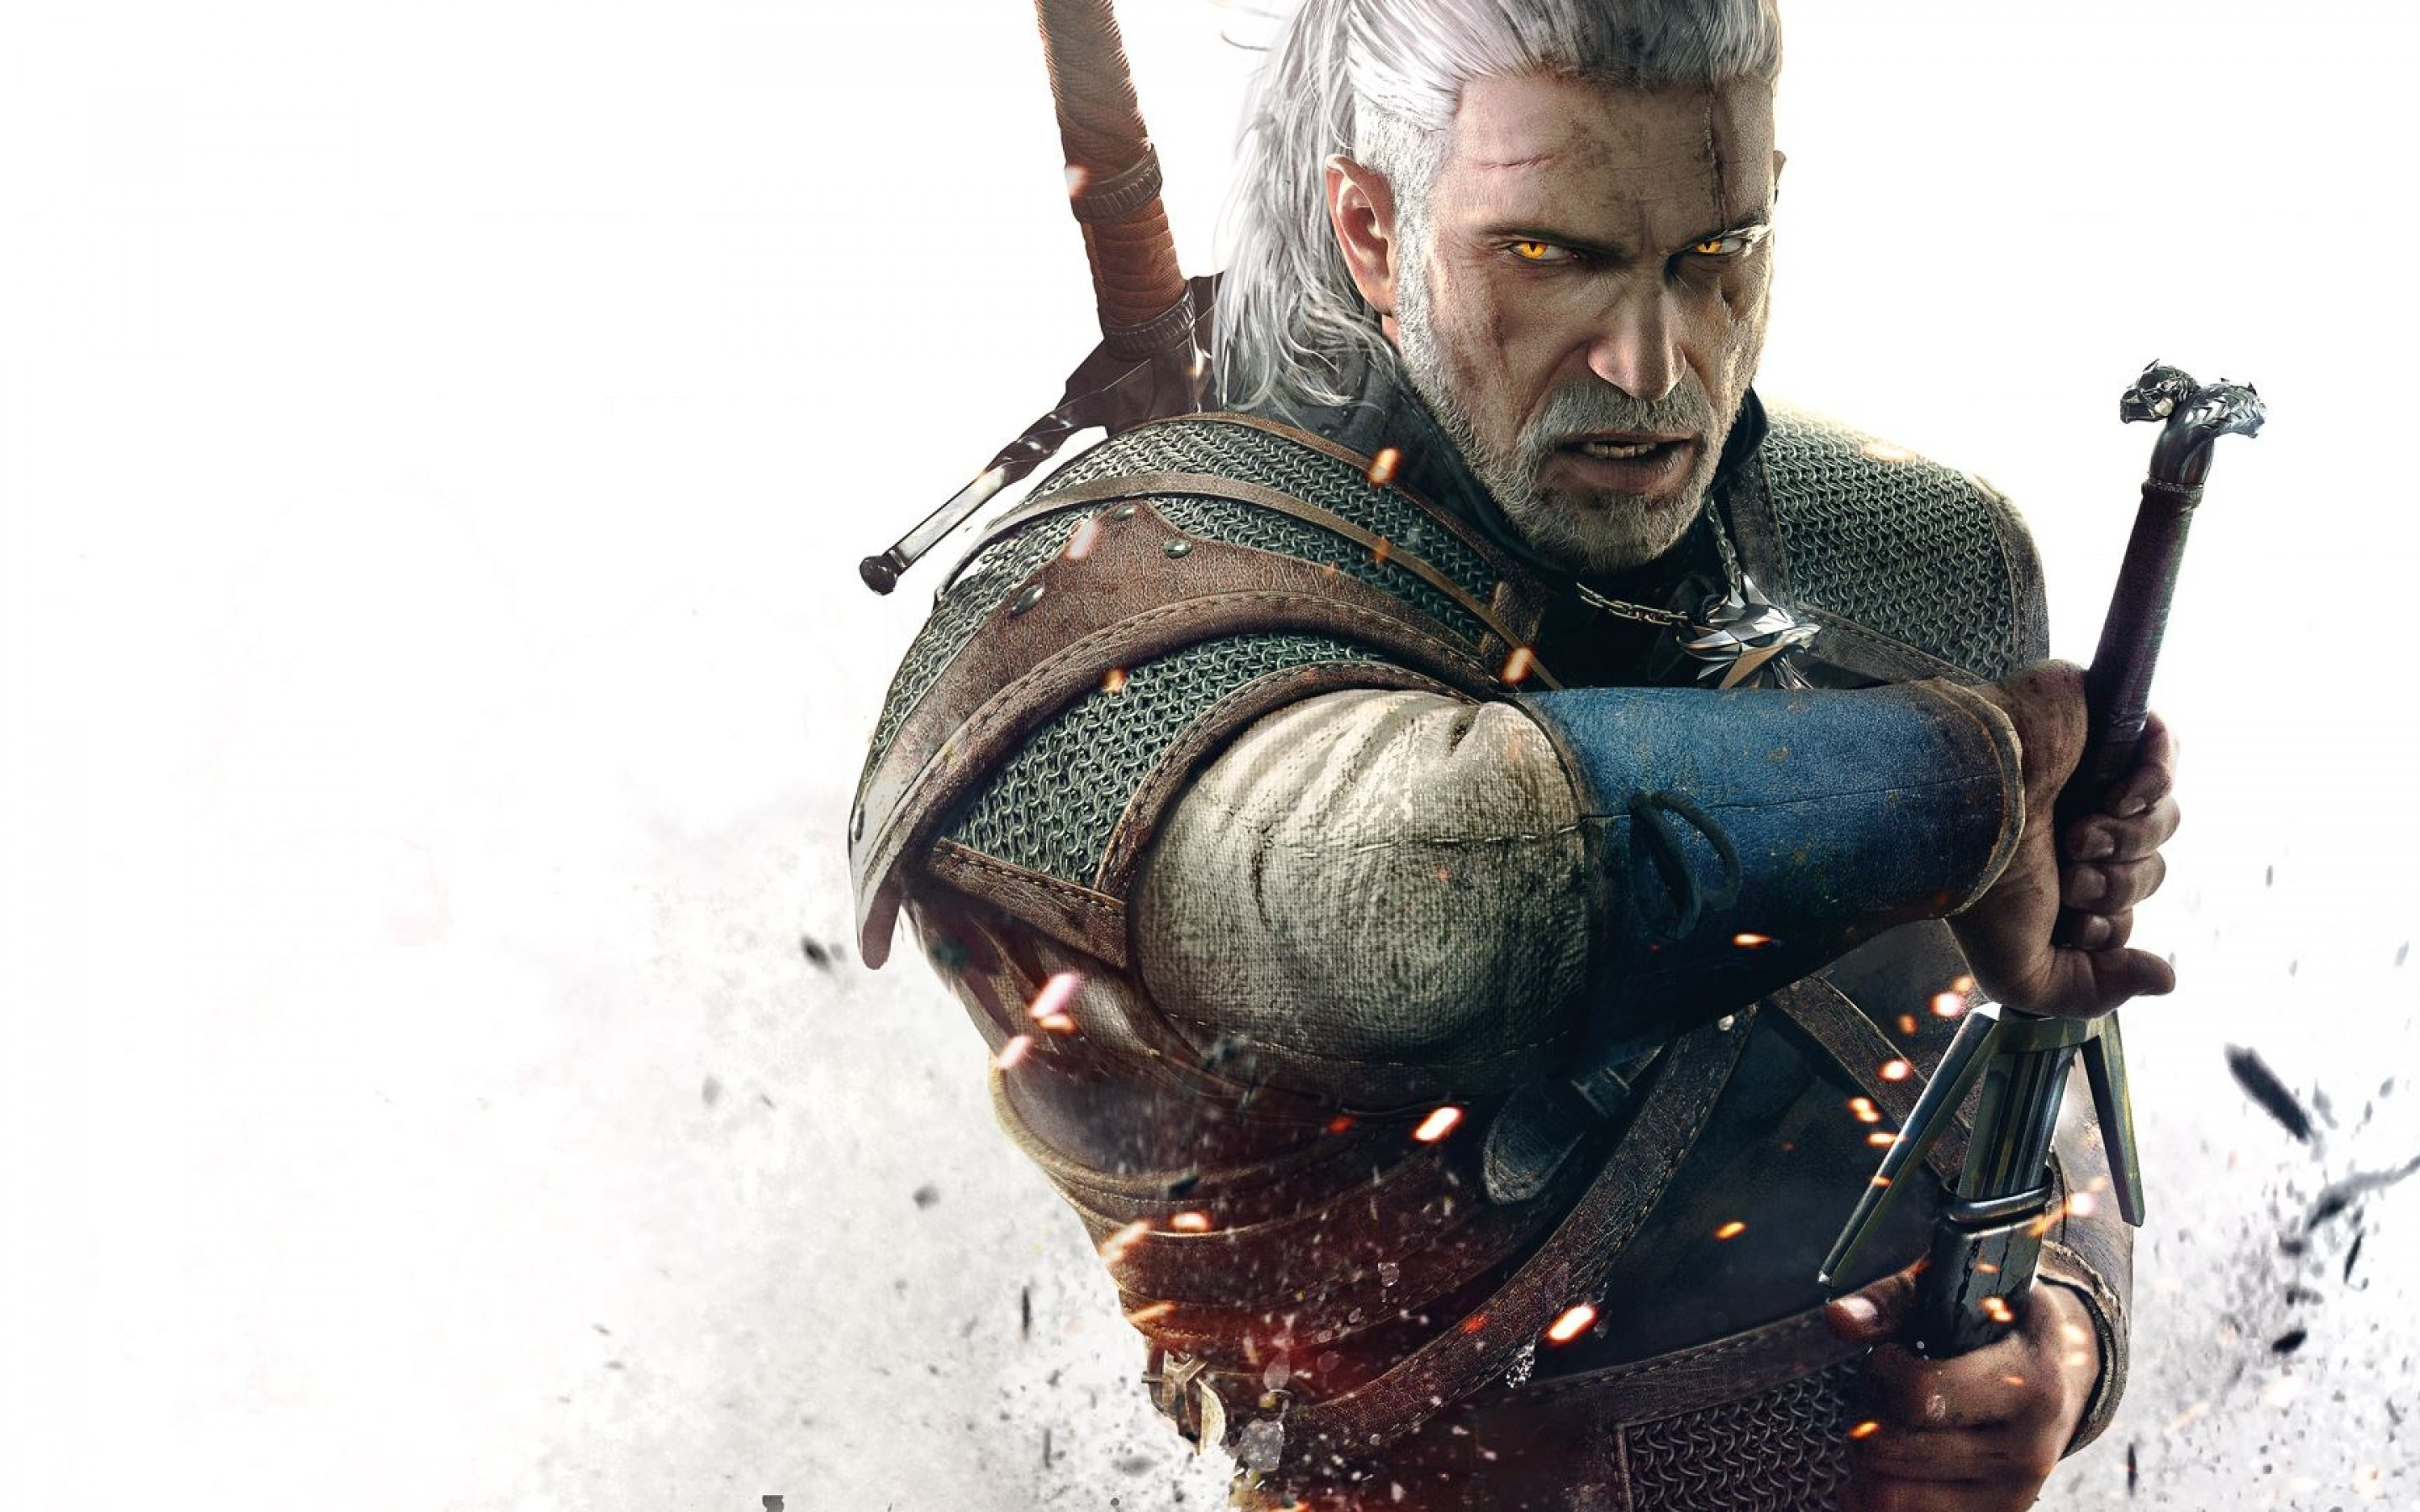 Geralt The Witcher 3 Wild Hunt Hd Wallpaper Wallpaperfx